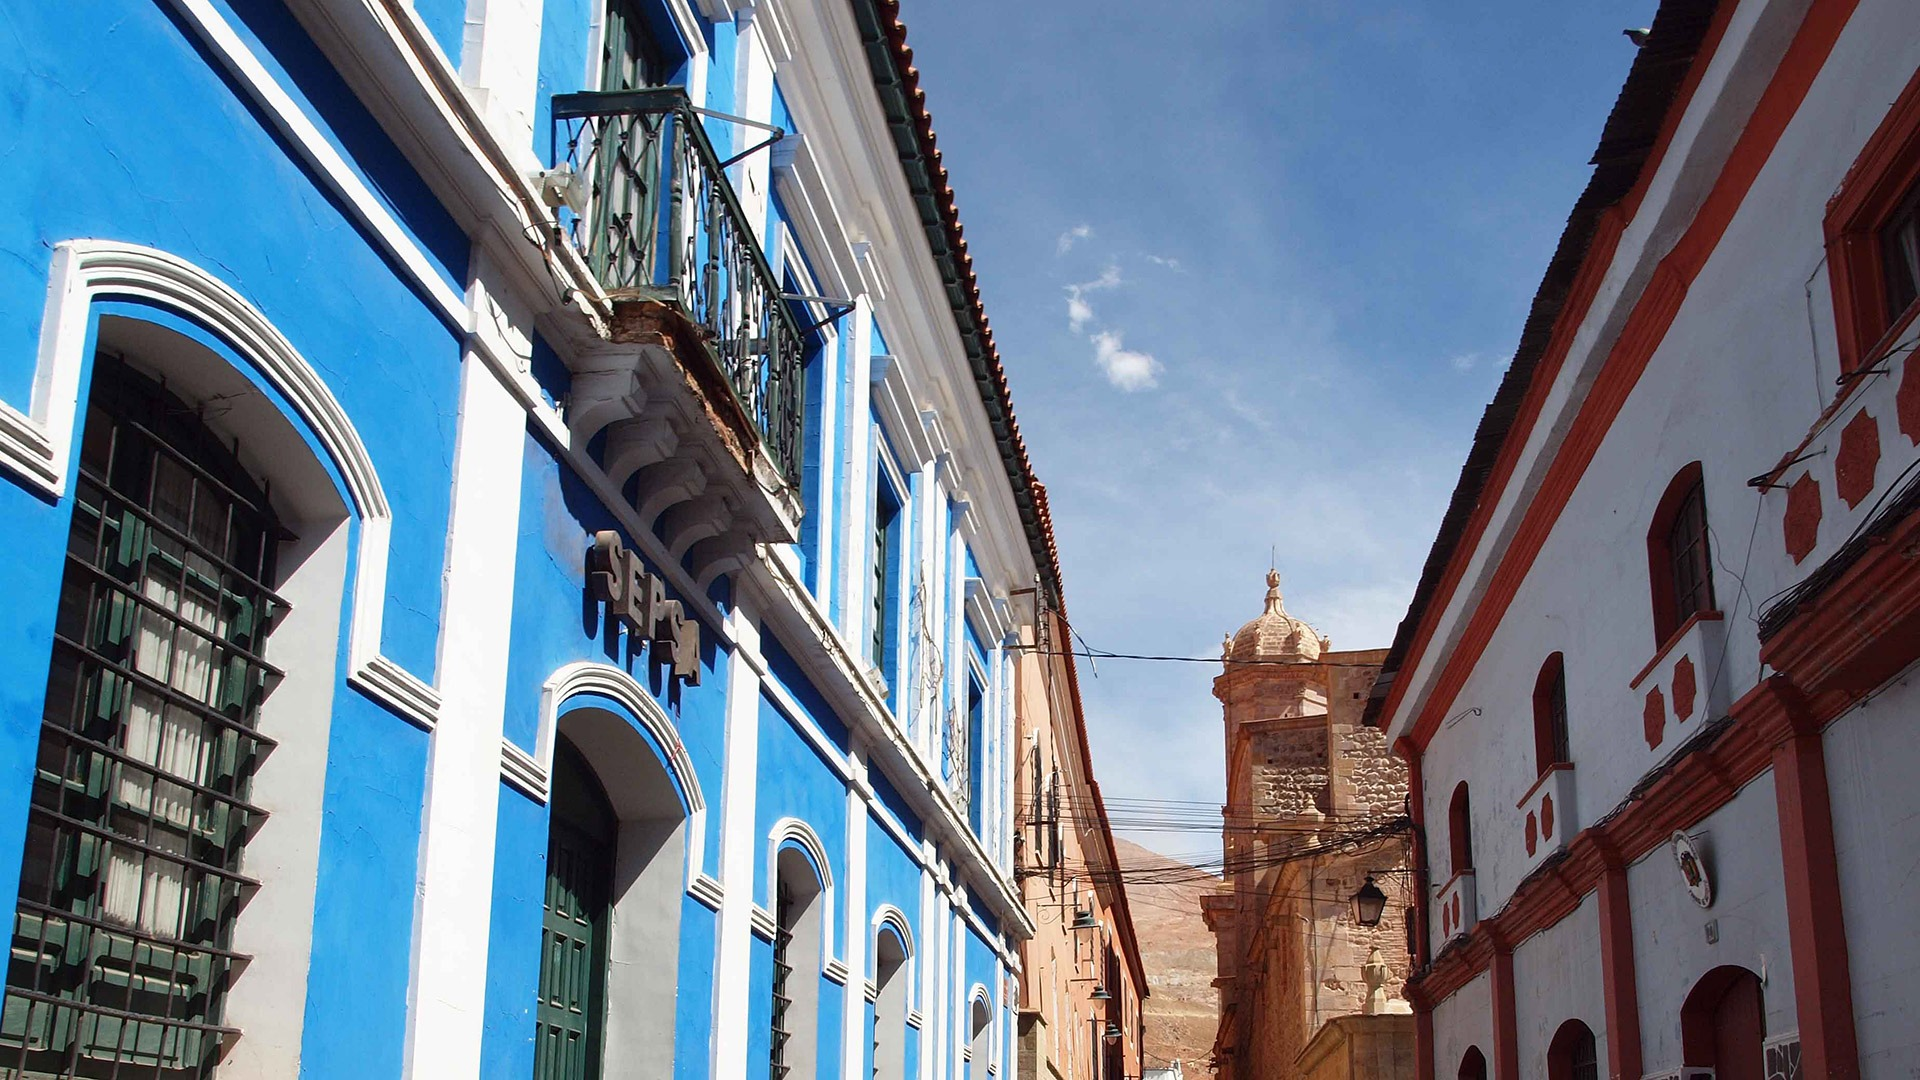 Colonial architecture in the former mining town of Potosi, Bolivia